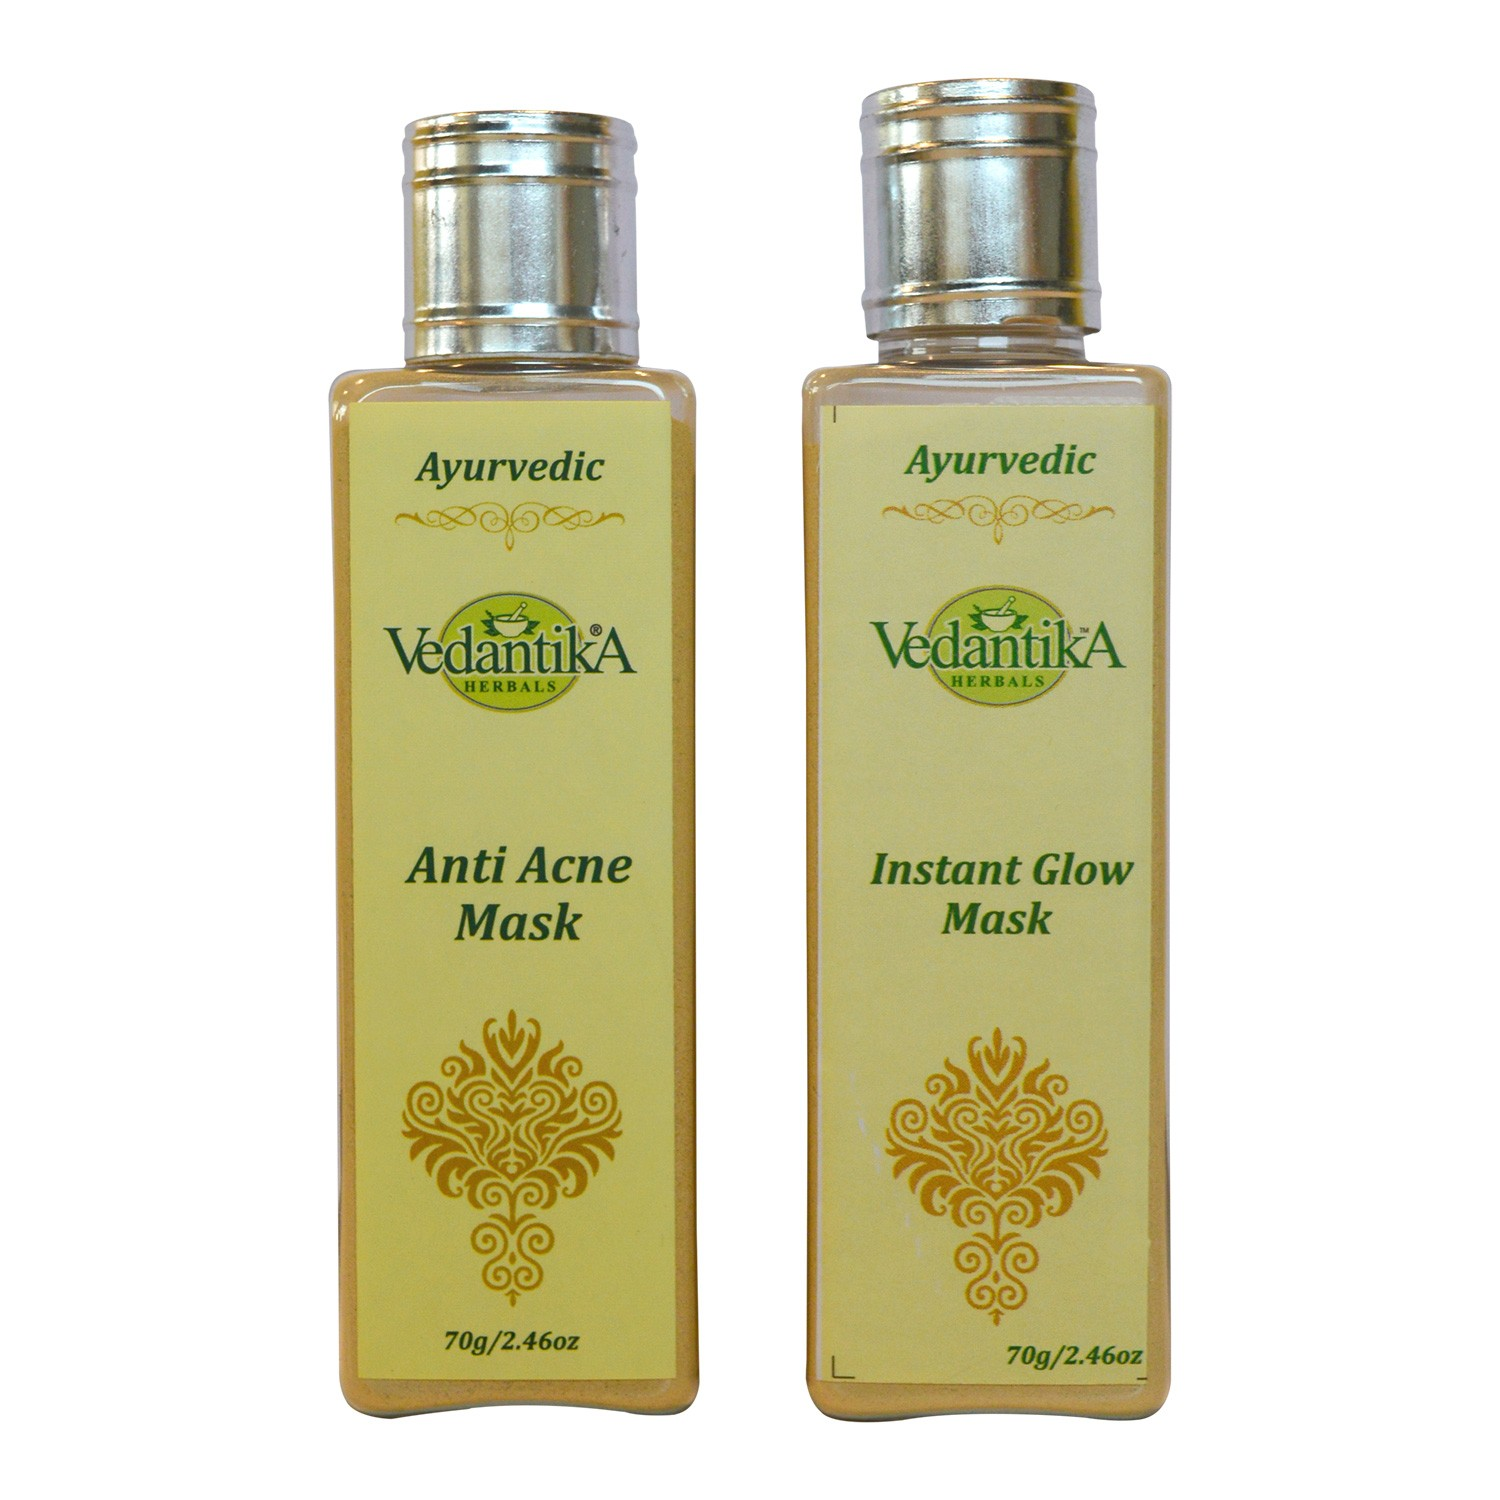 Anti Acne Mask & Instant Glow Mask Combo   MRP: Rs. 500